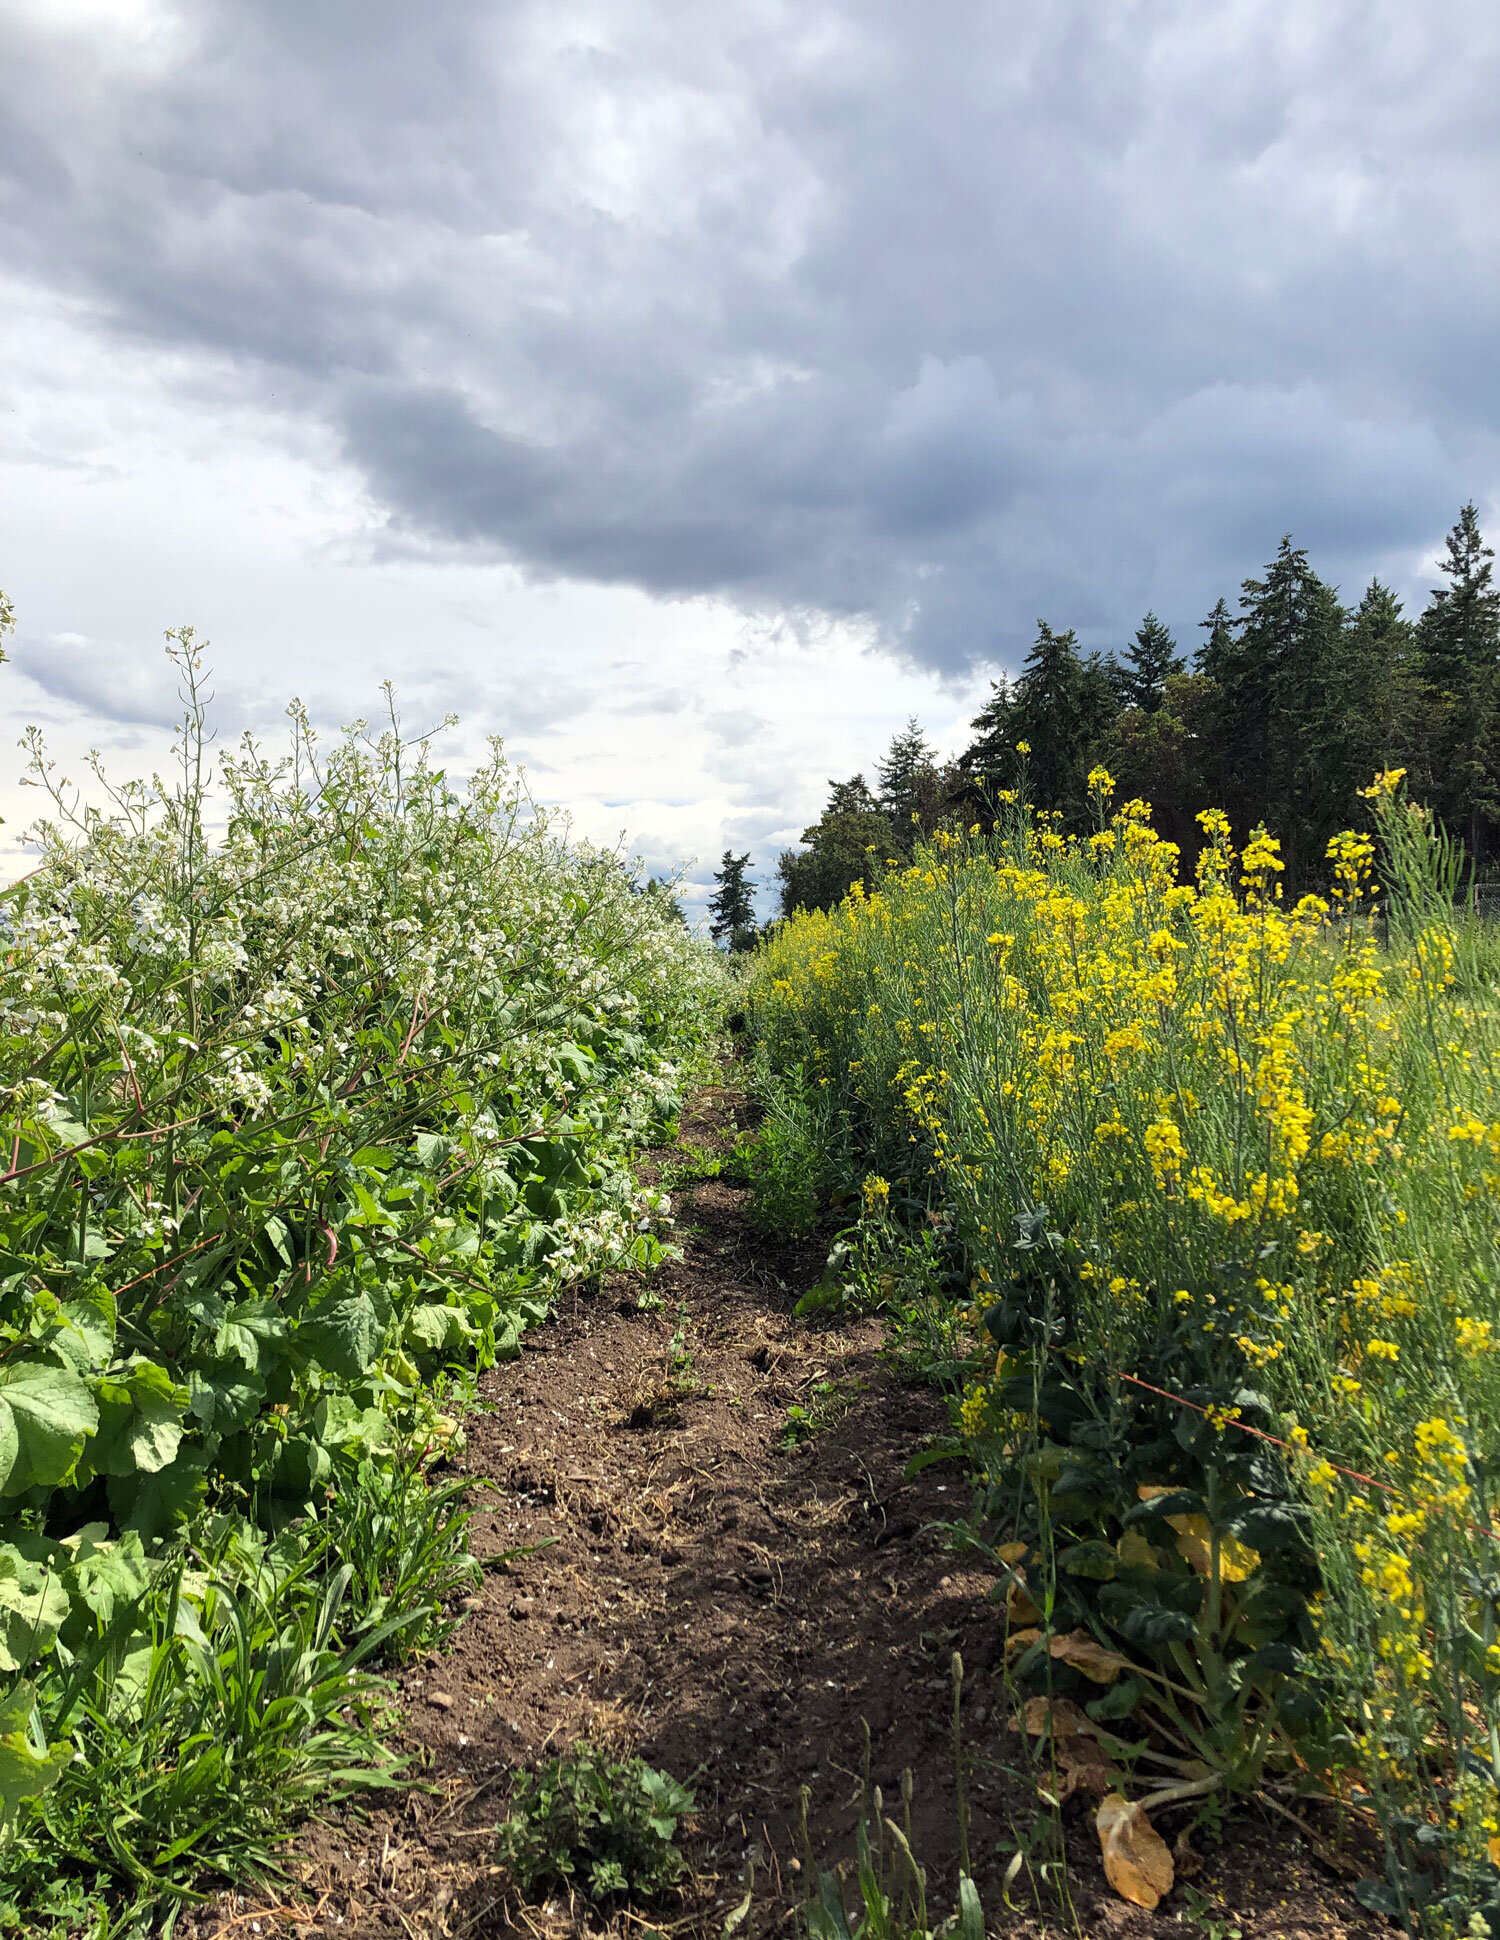 Rows of Brassica flowers